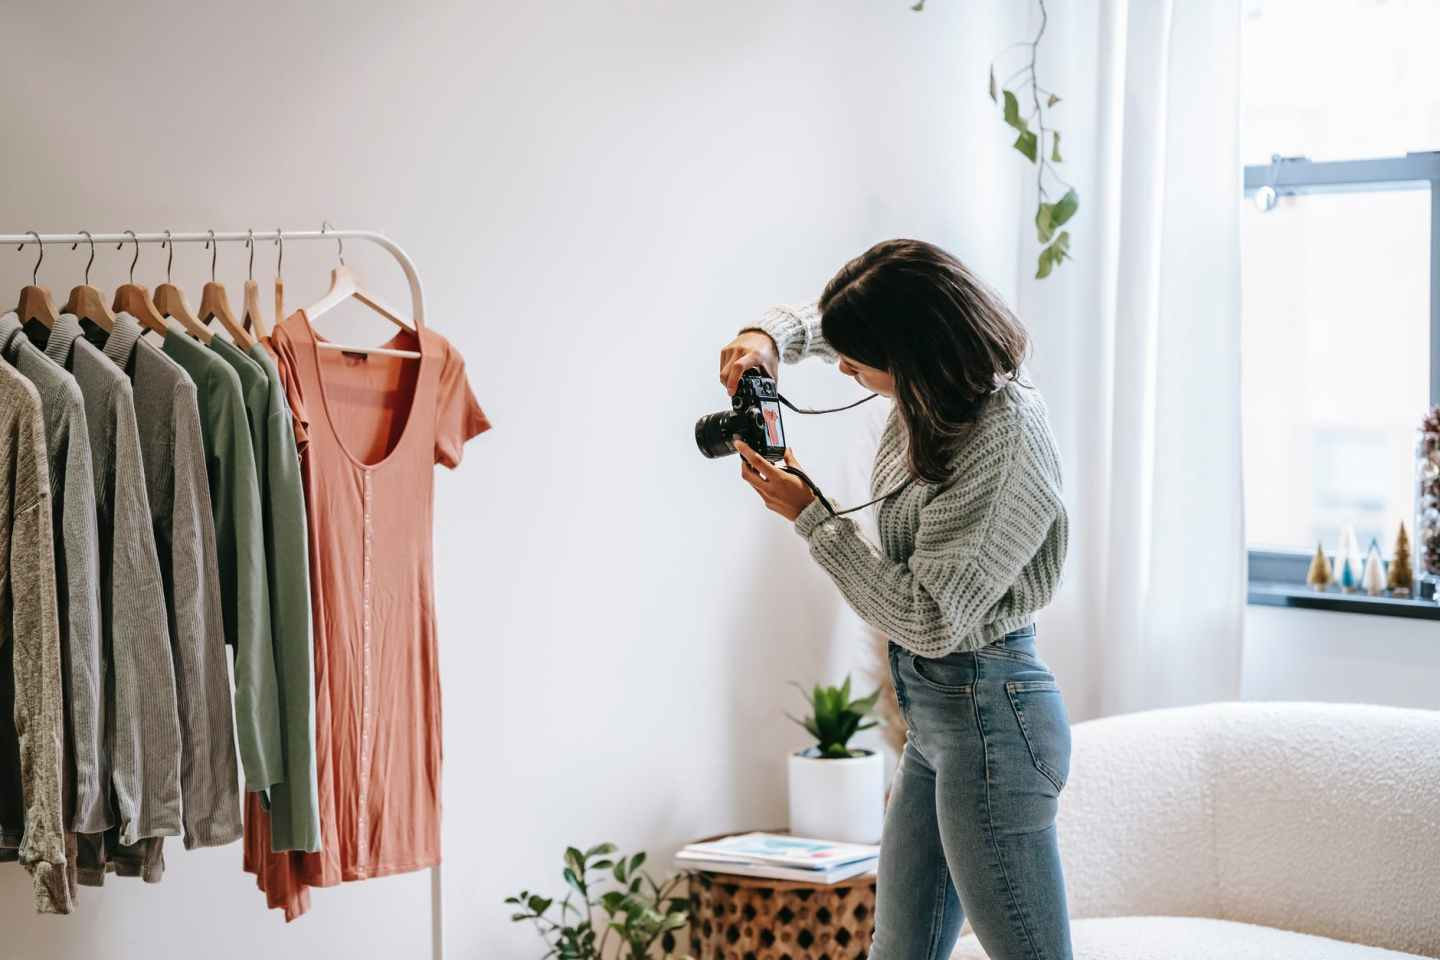 woman taking photo of clothes